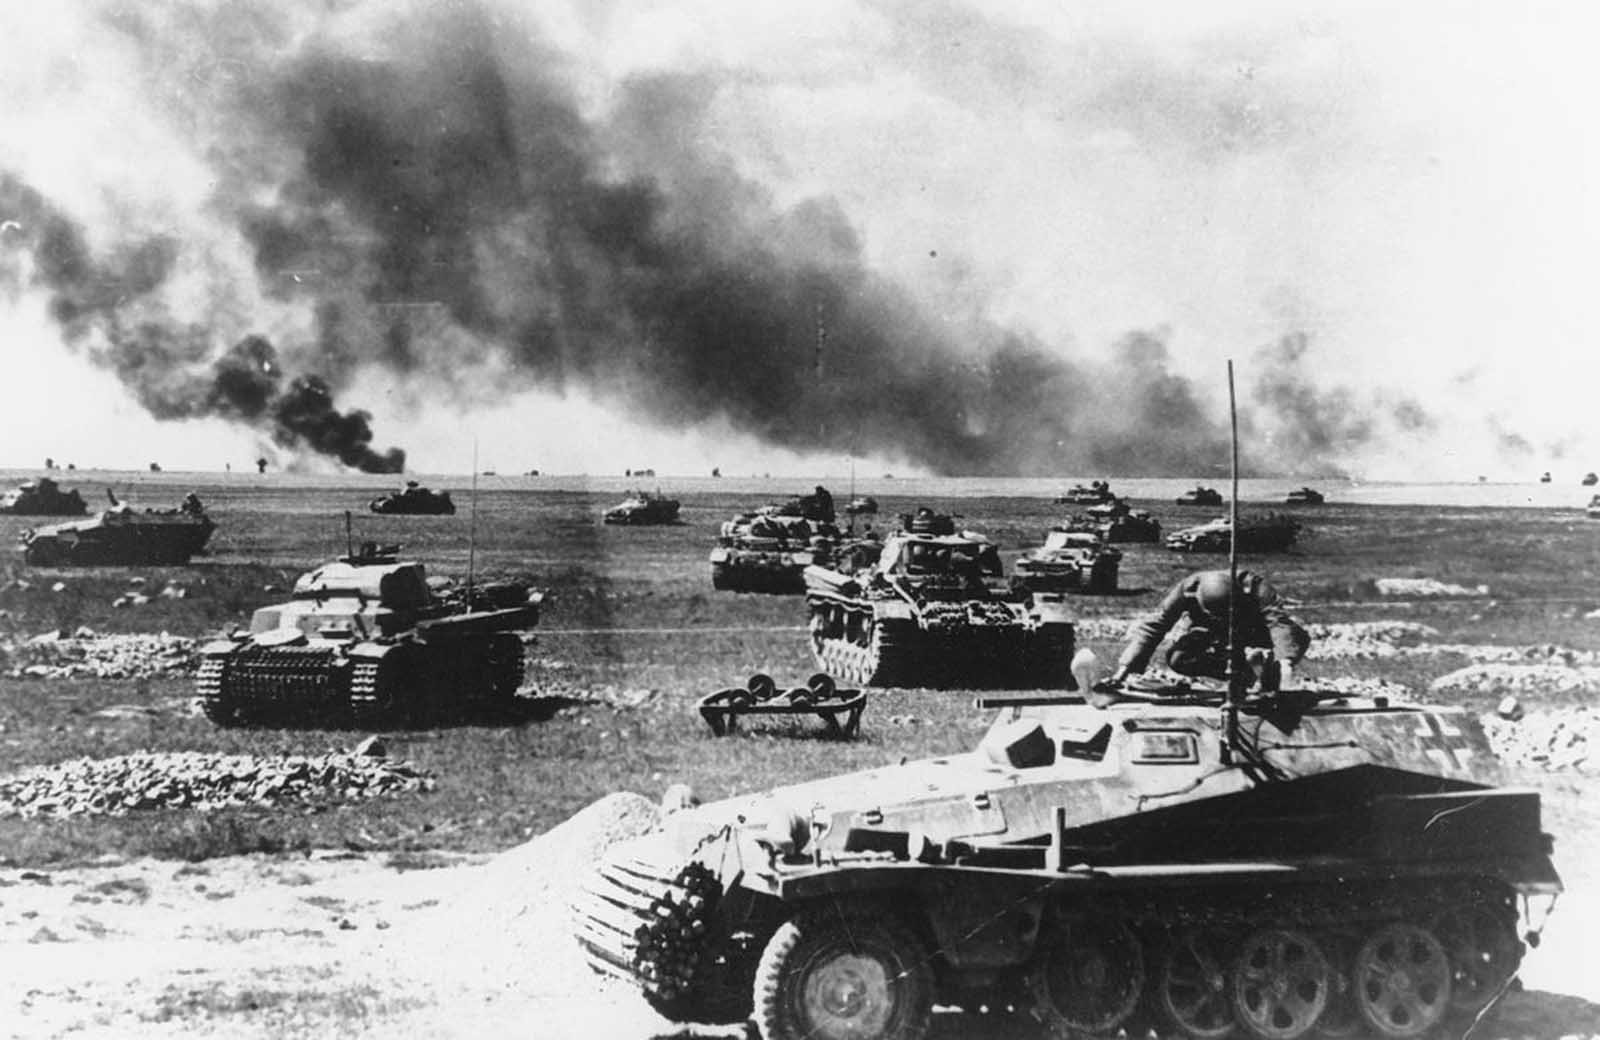 An Sd.Kfz-250 half-track in front of German tank units, as they prepare for an attack, on July 21, 1941, somewhere along the Russian warfront, during the German invasion of the Soviet Union.